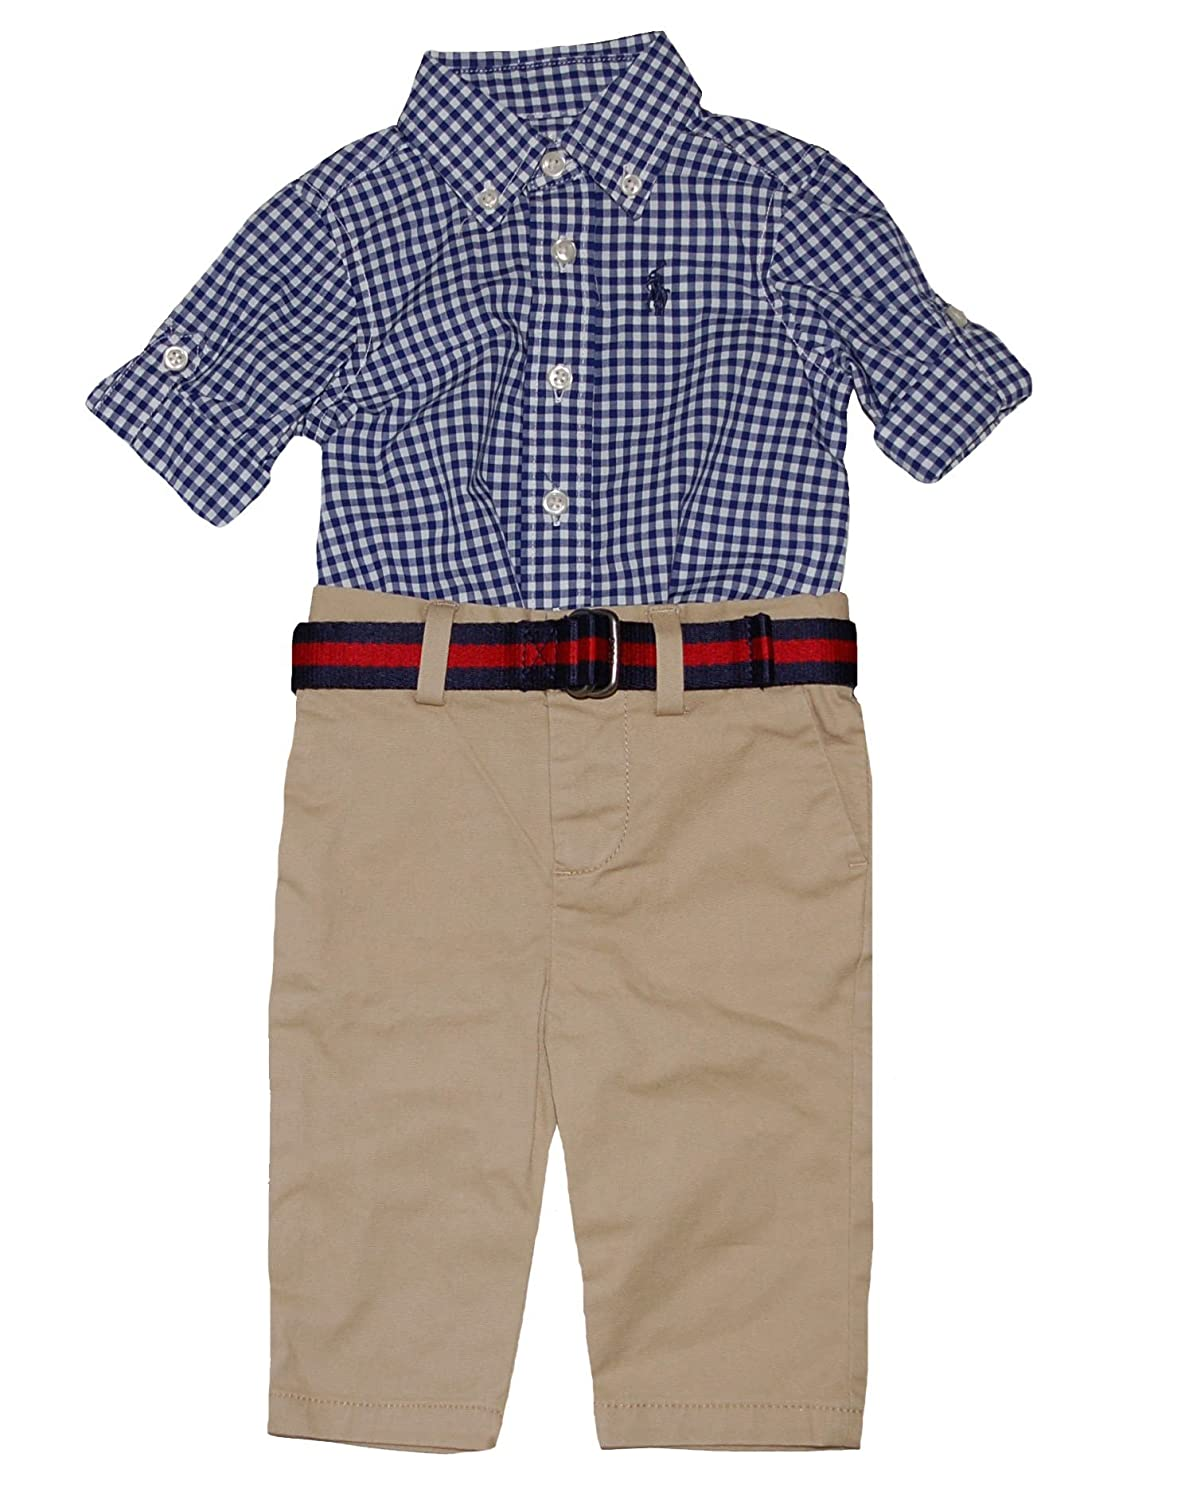 edc51d155 Amazon.com  Ralph Lauren Polo Baby Boys Gingham Shirt   Chino Pants Set (3  Months)  Baby